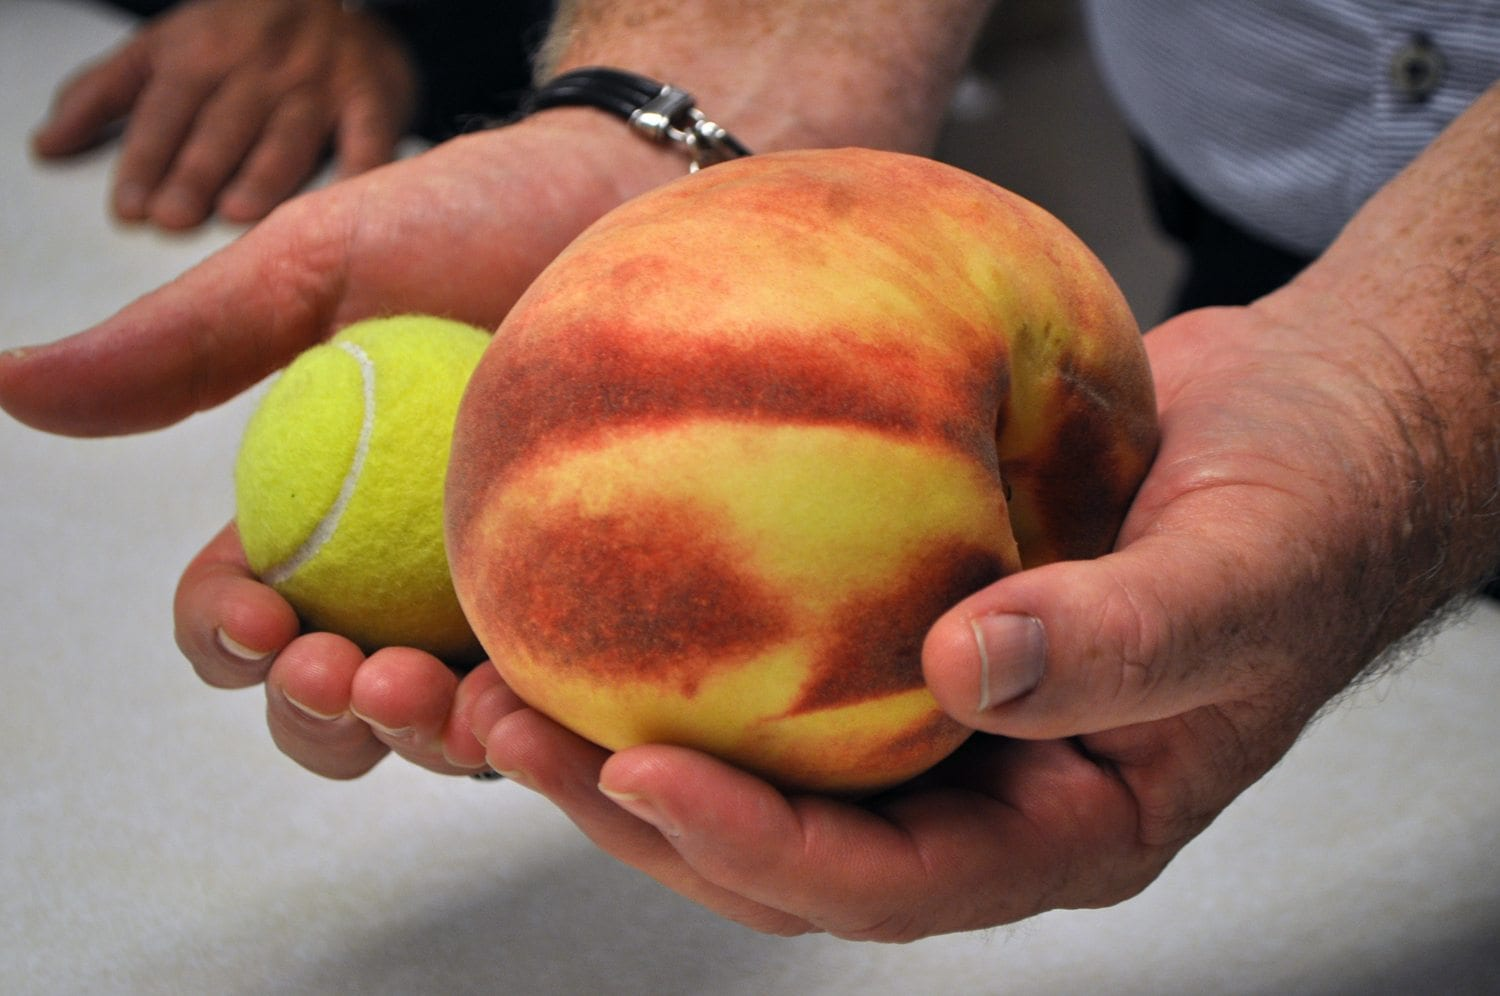 Johnson County peach may break Guinness World Record